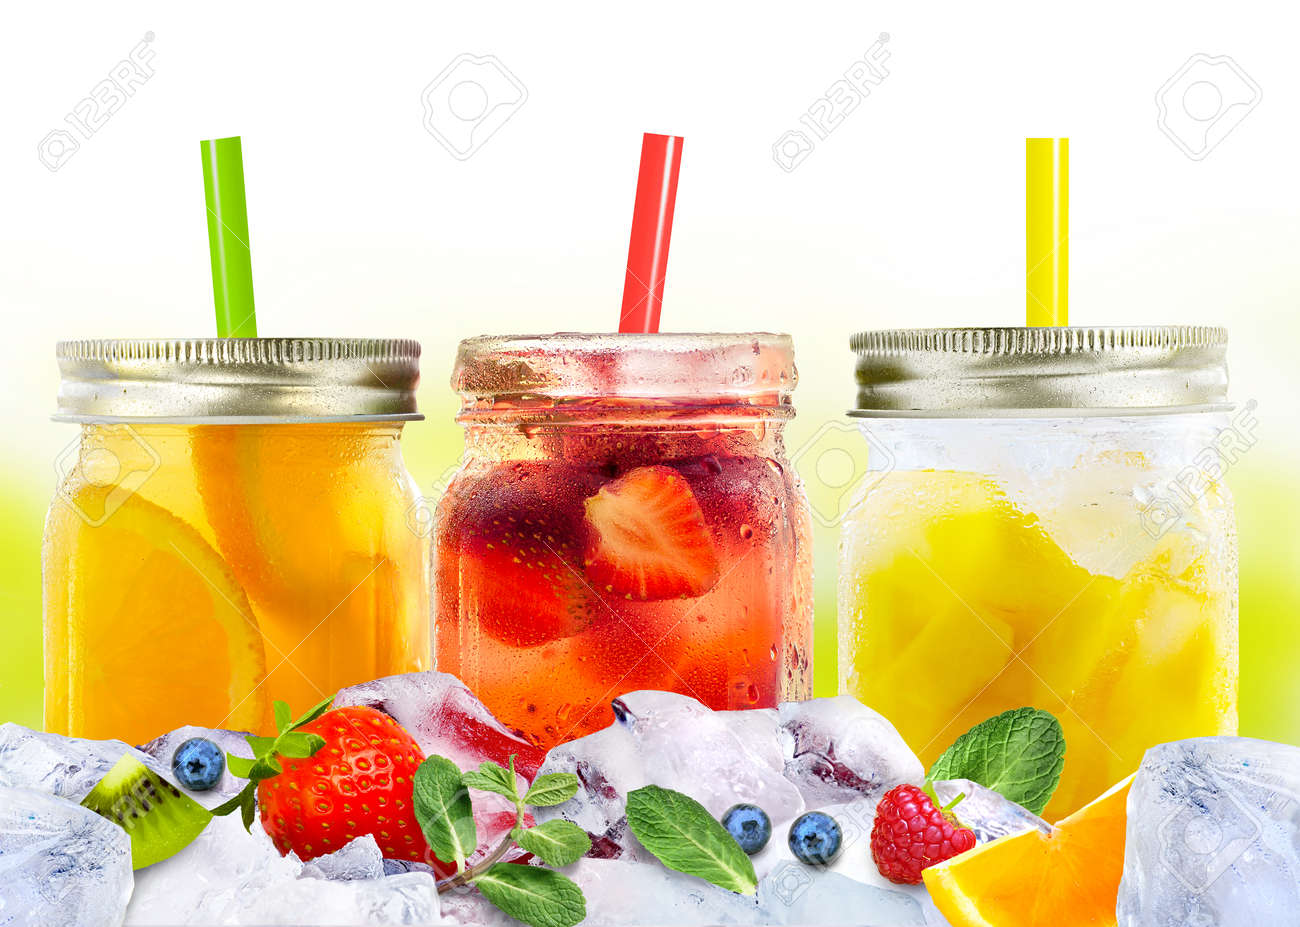 Bright Colorful refreshing summer beverages in glass jars and straws on ice with fruits and berries - 170845770